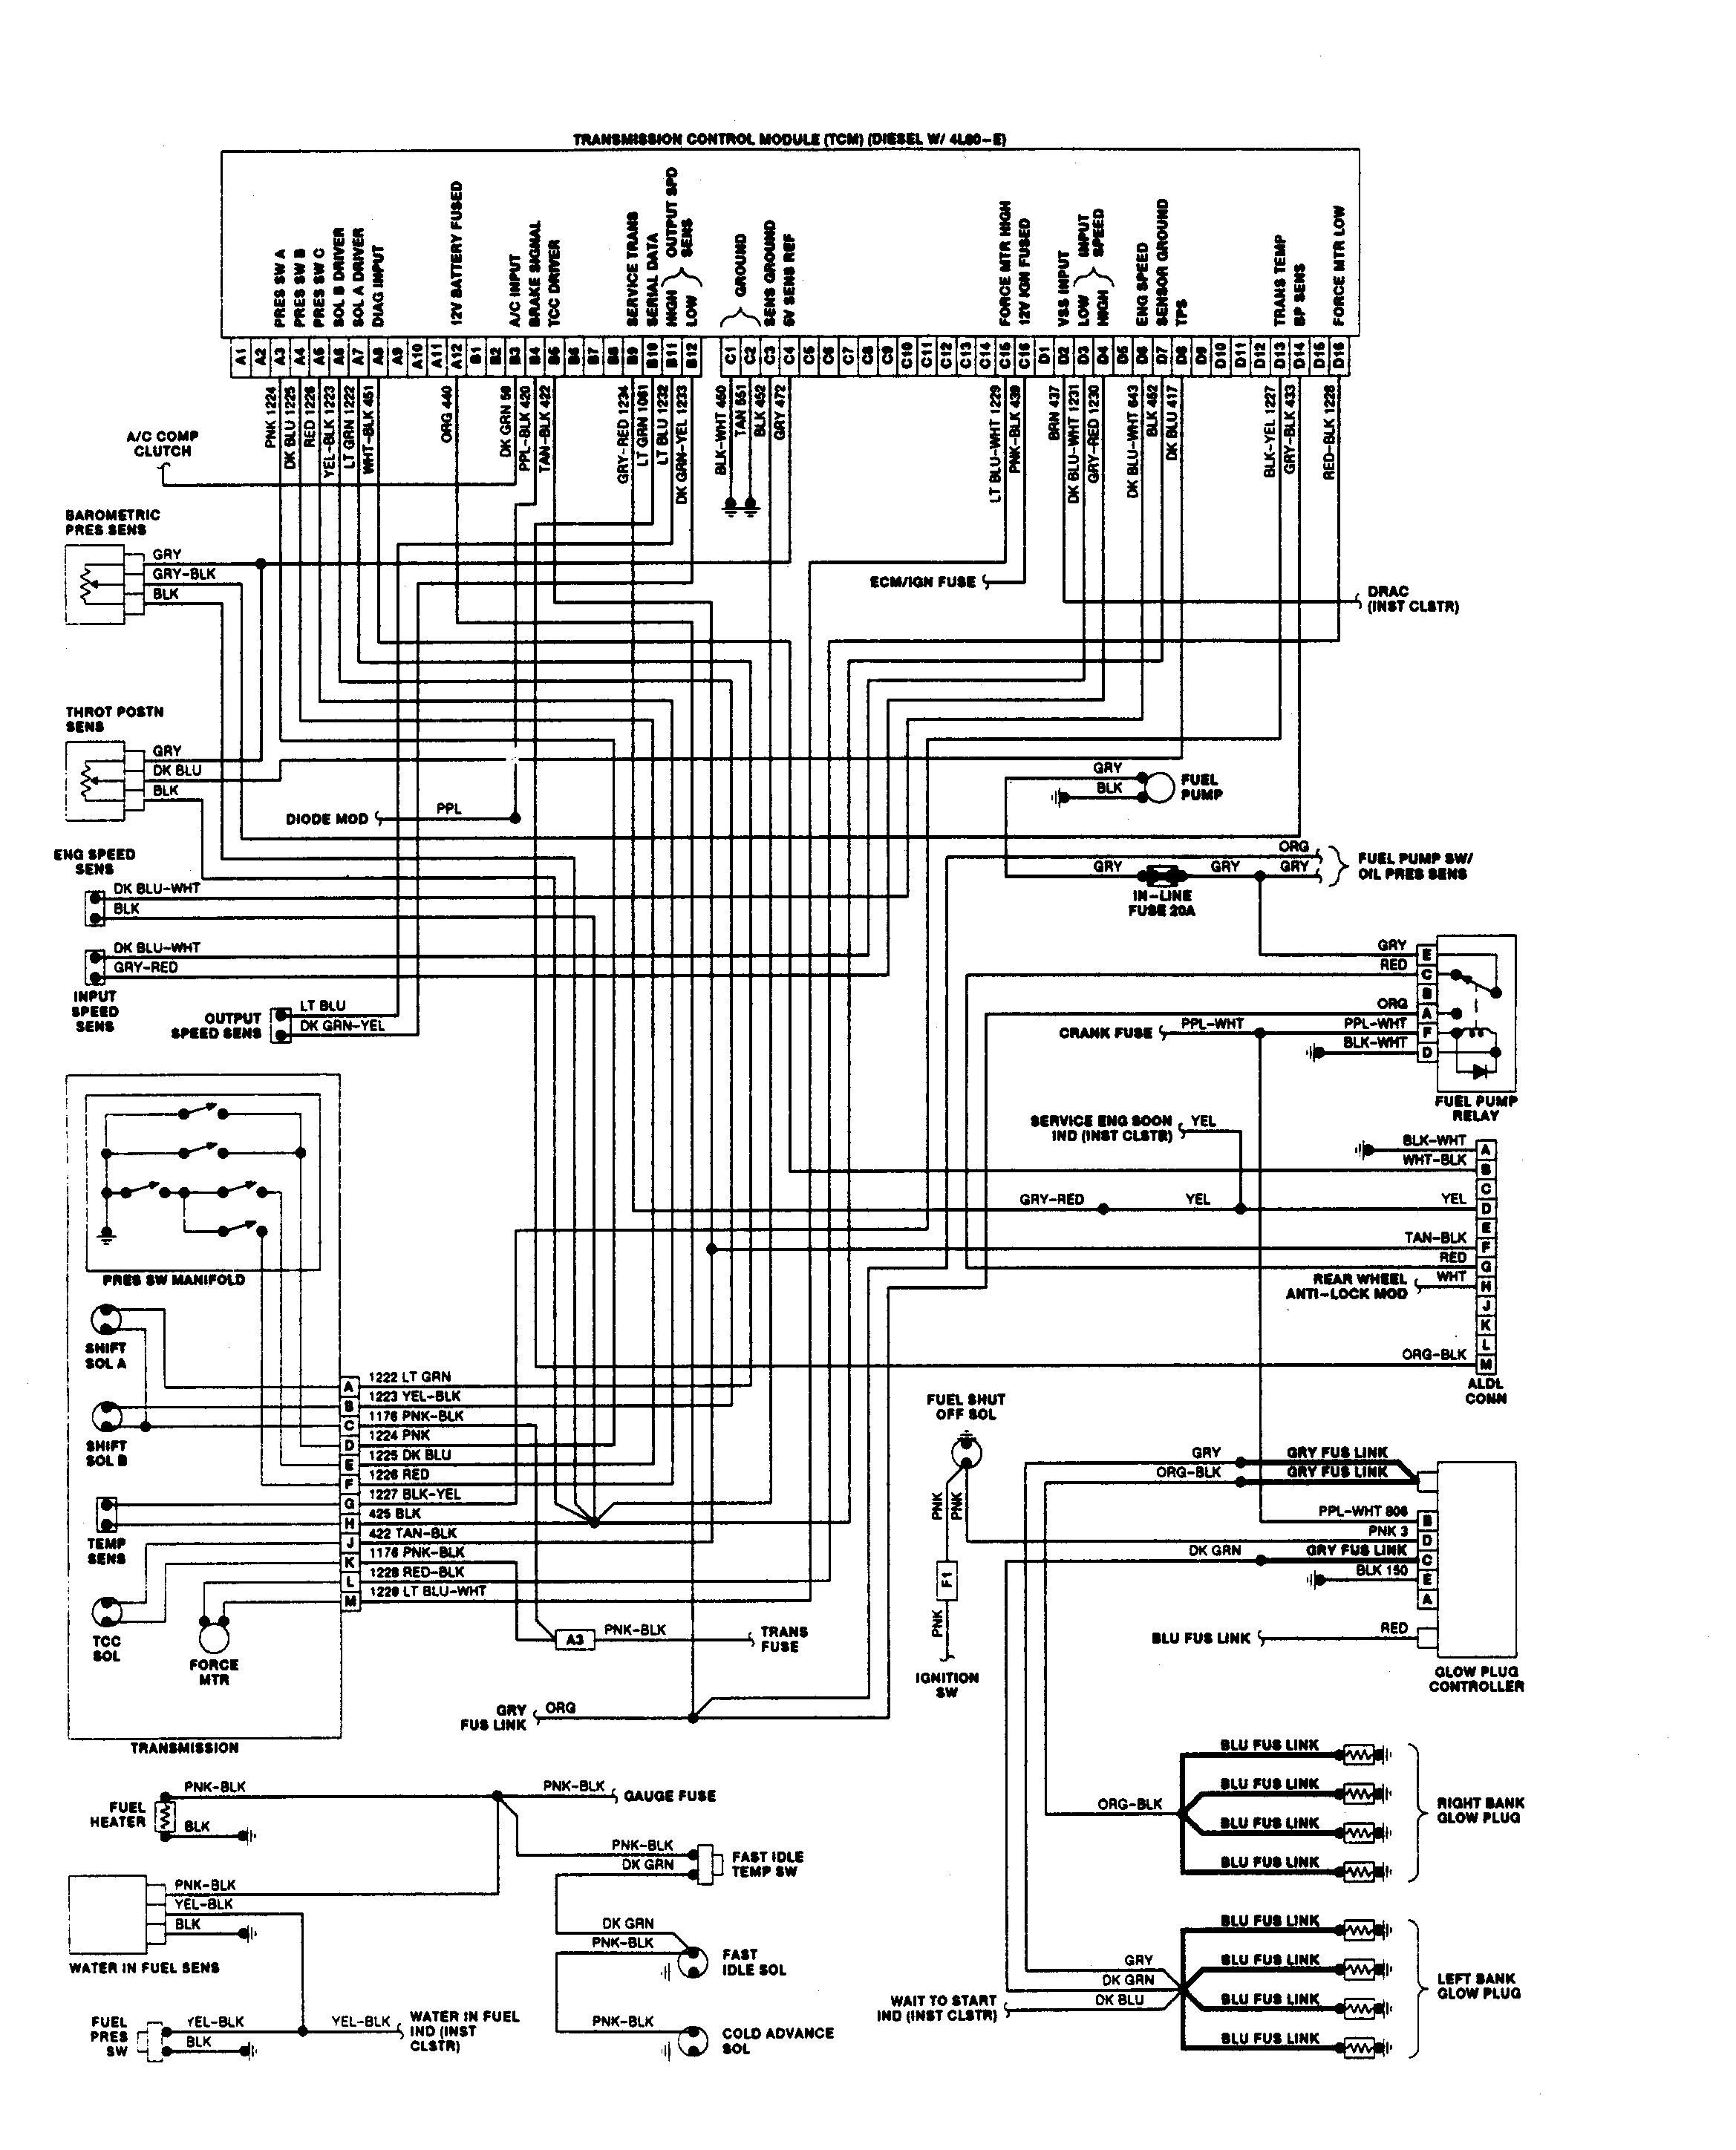 hight resolution of 1991 chevy p30 wiring diagrams wiring diagrams schematics 1999 chevy p30 wiring diagram 1991 chevy p30